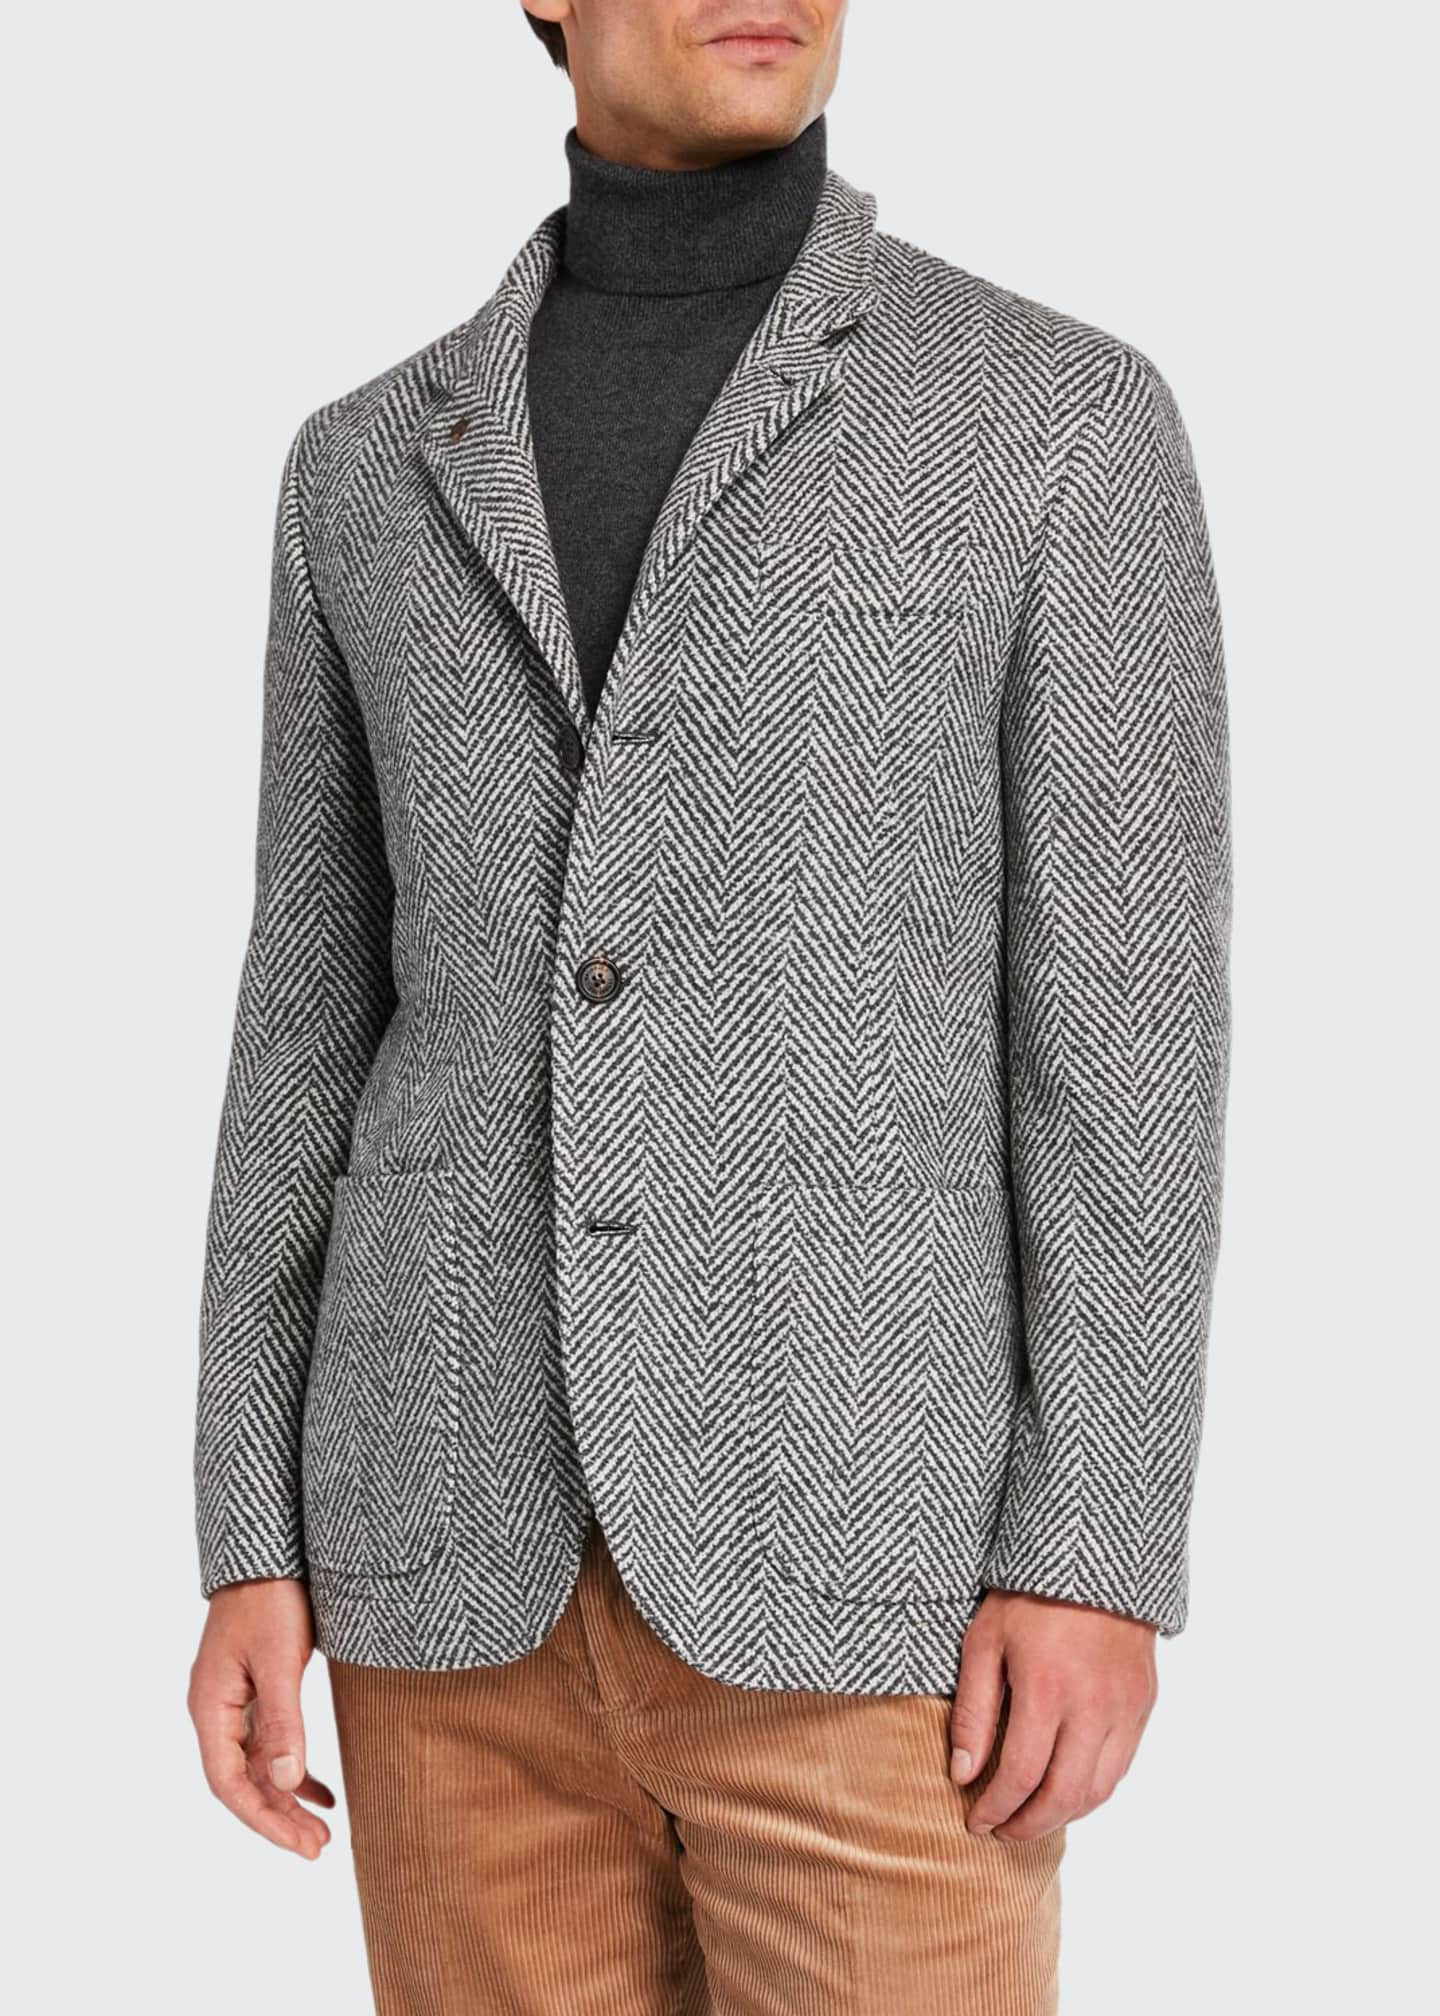 Brunello Cucinelli Men's Chevron Three-Button Jacket